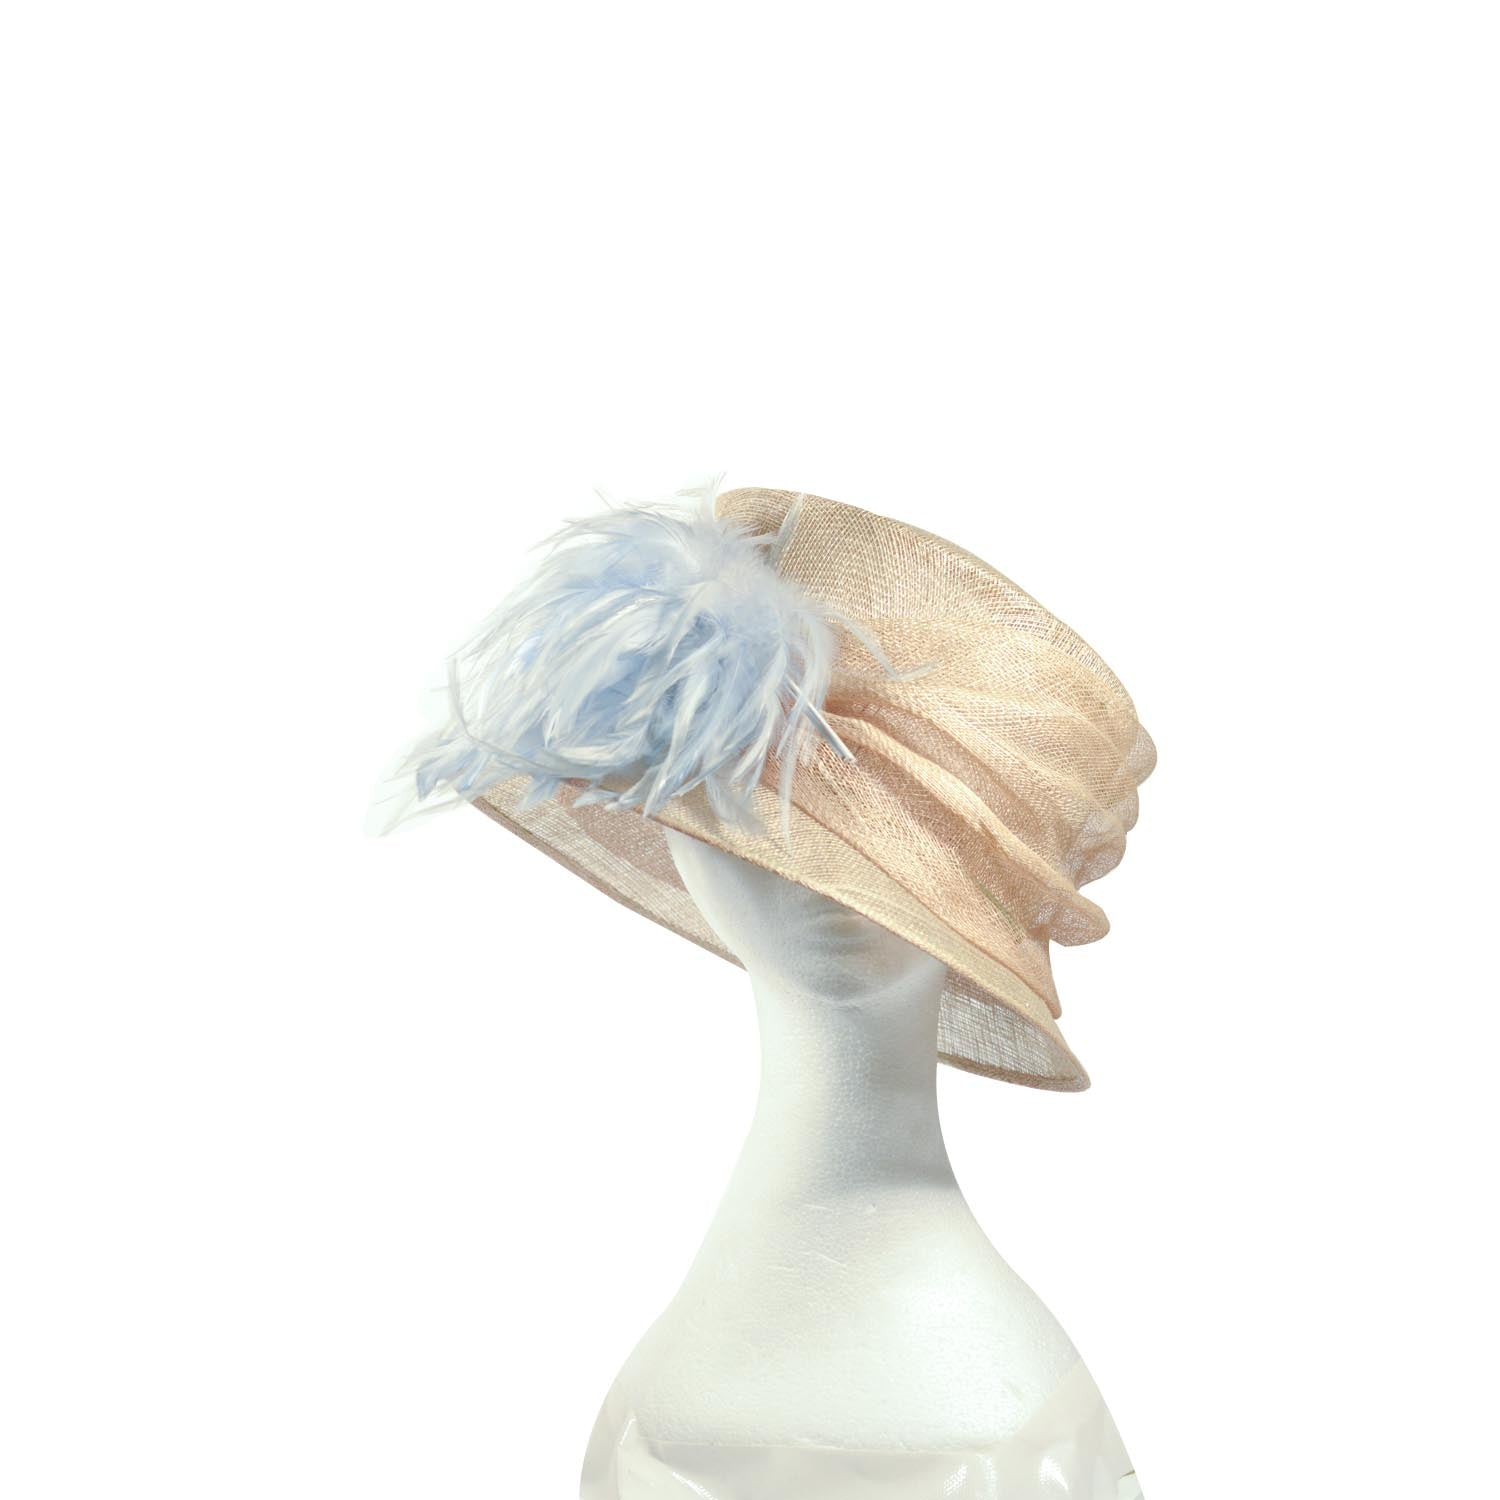 Cream straw hat with pale blue feathers